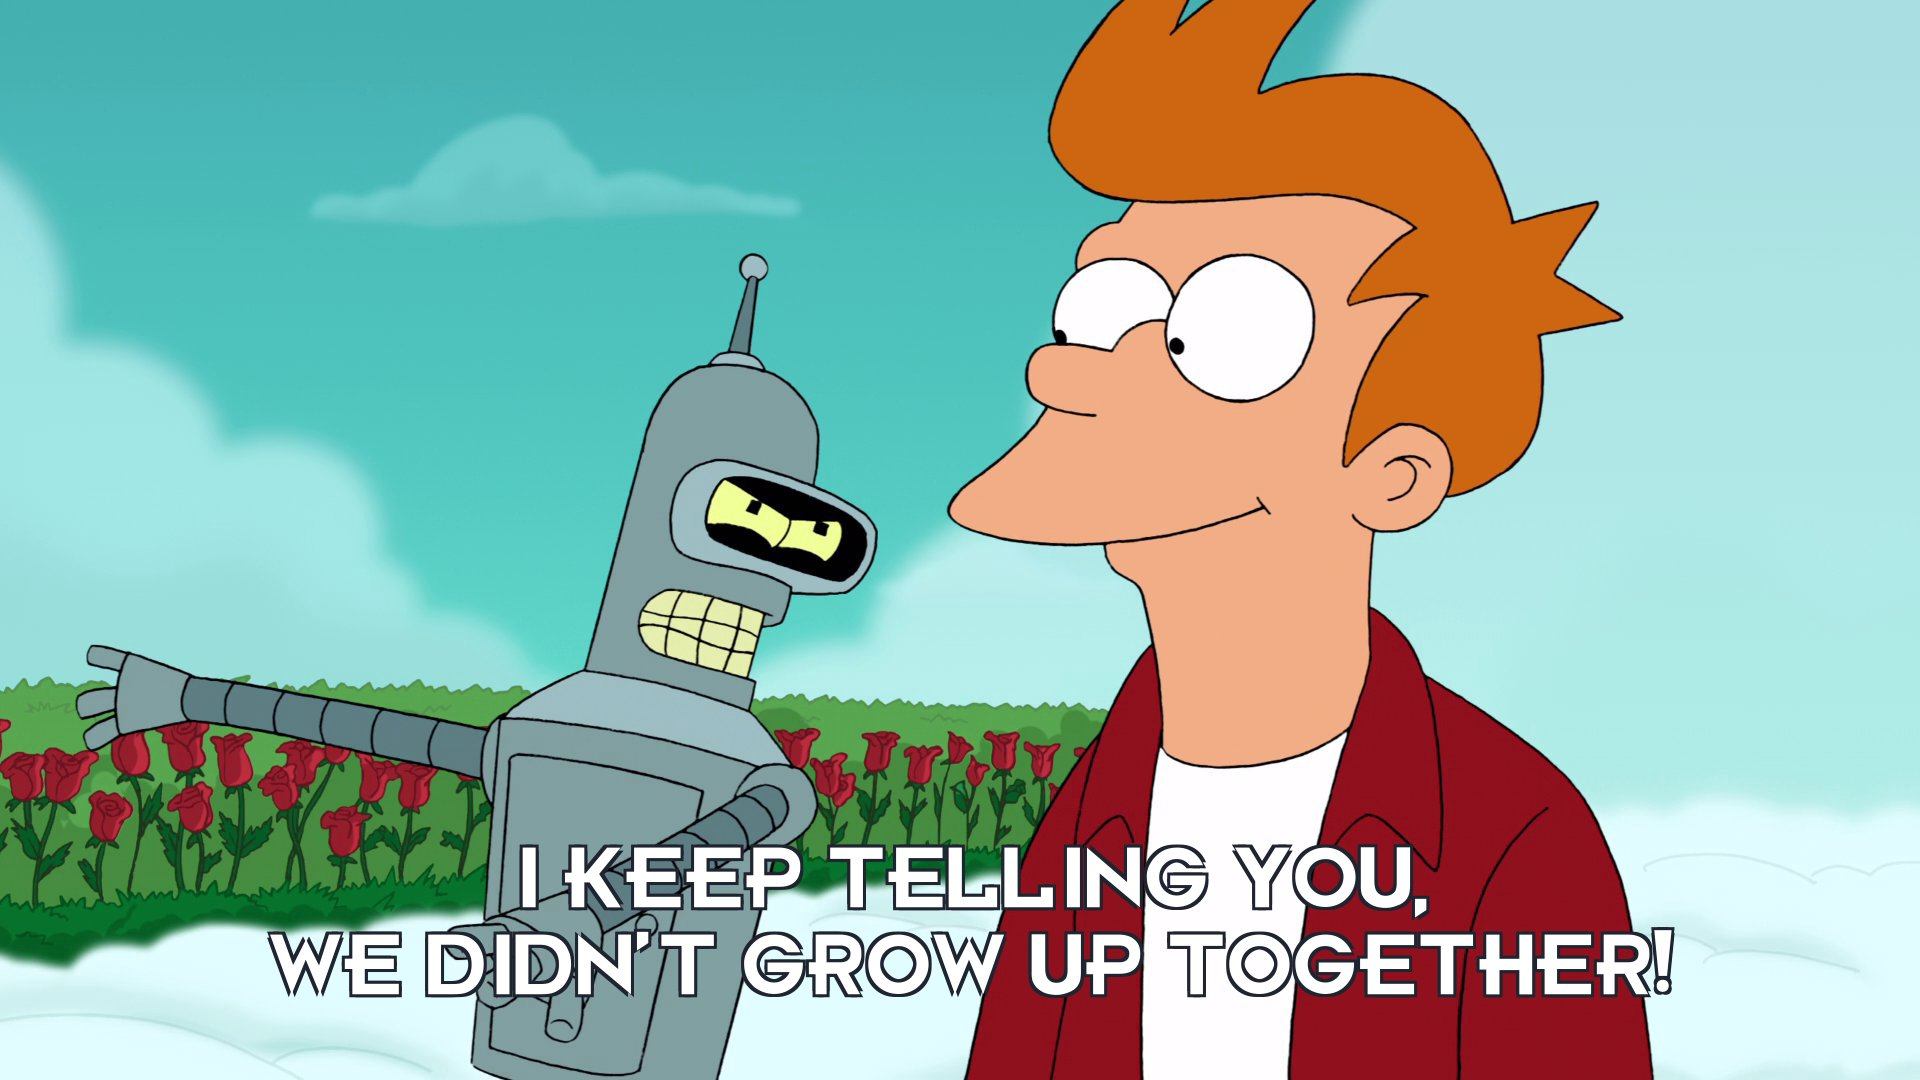 Bender Bending Rodriguez: I keep telling you, we didn't grow up together!